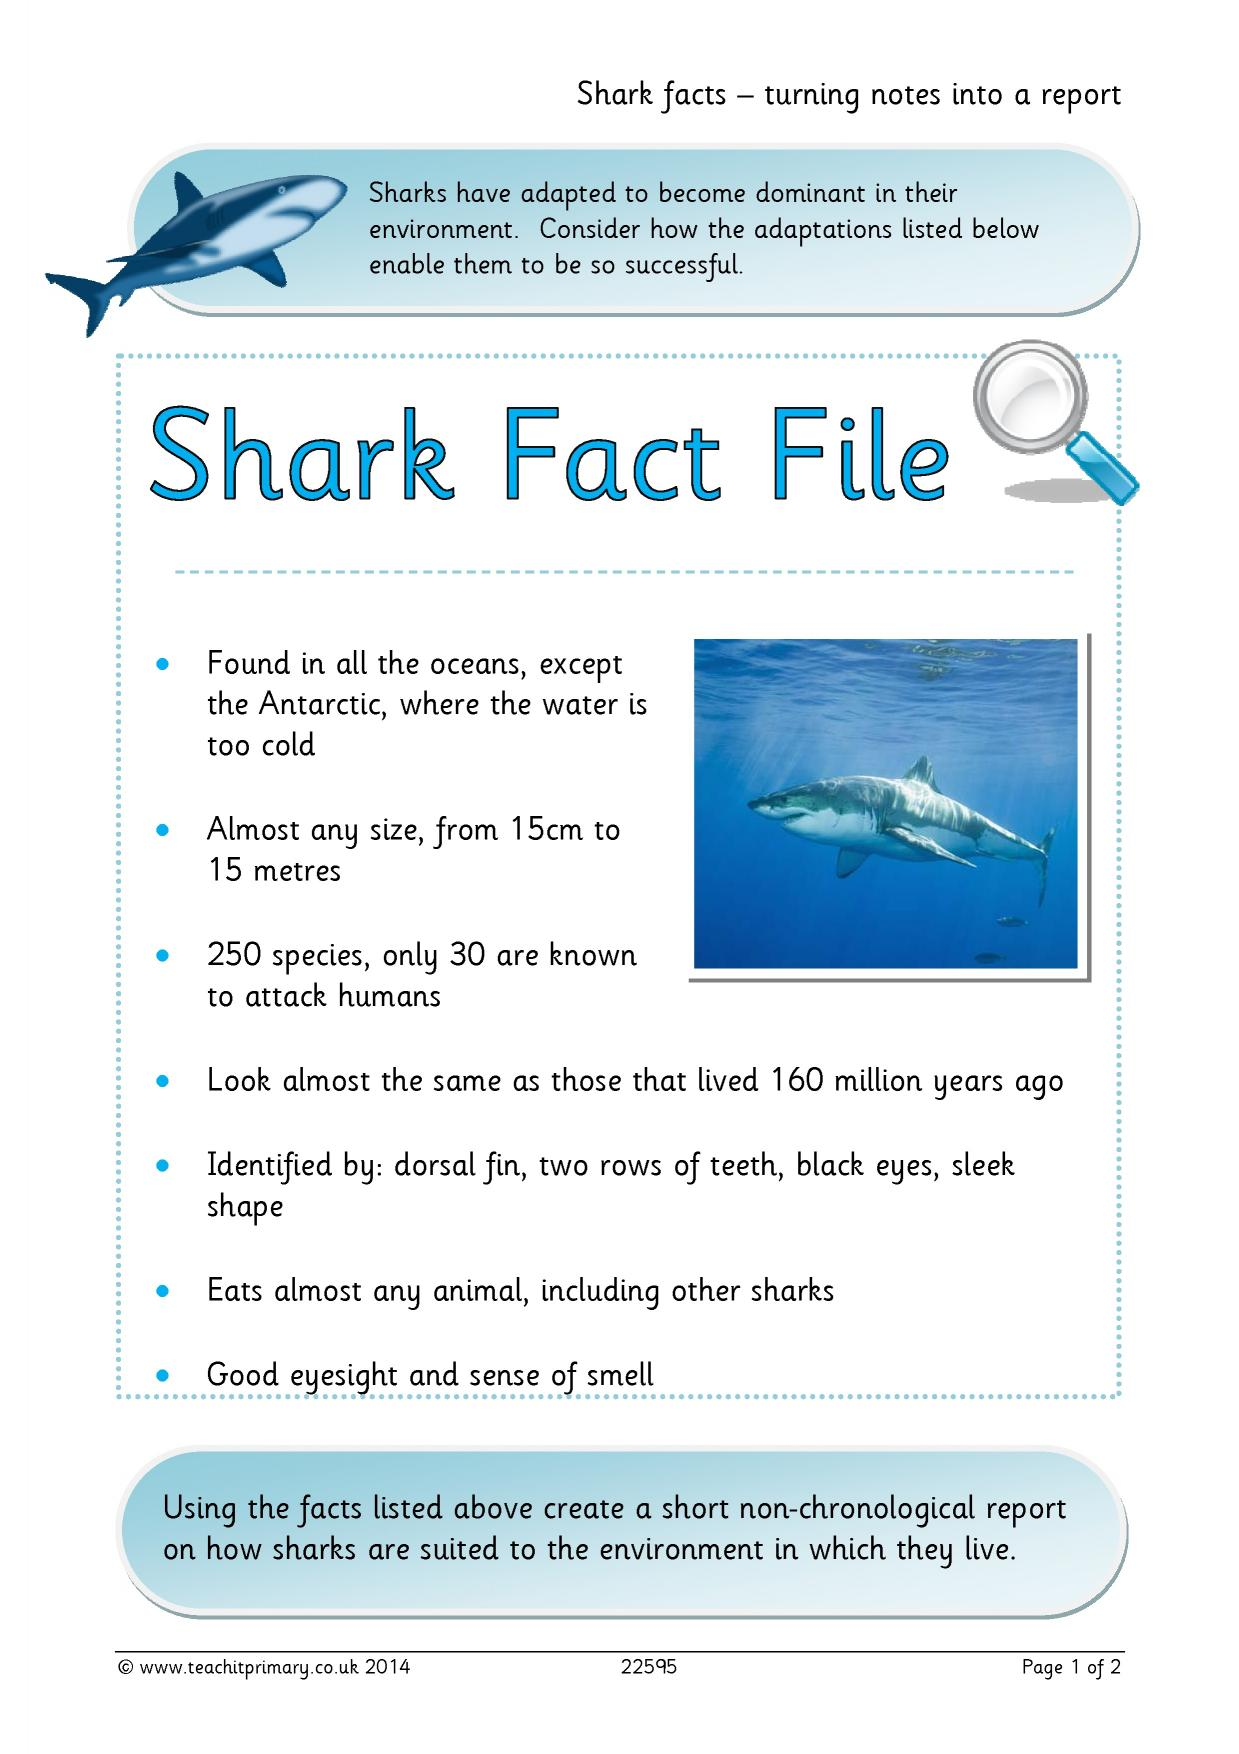 Shark Facts Turning Notes Into A Report